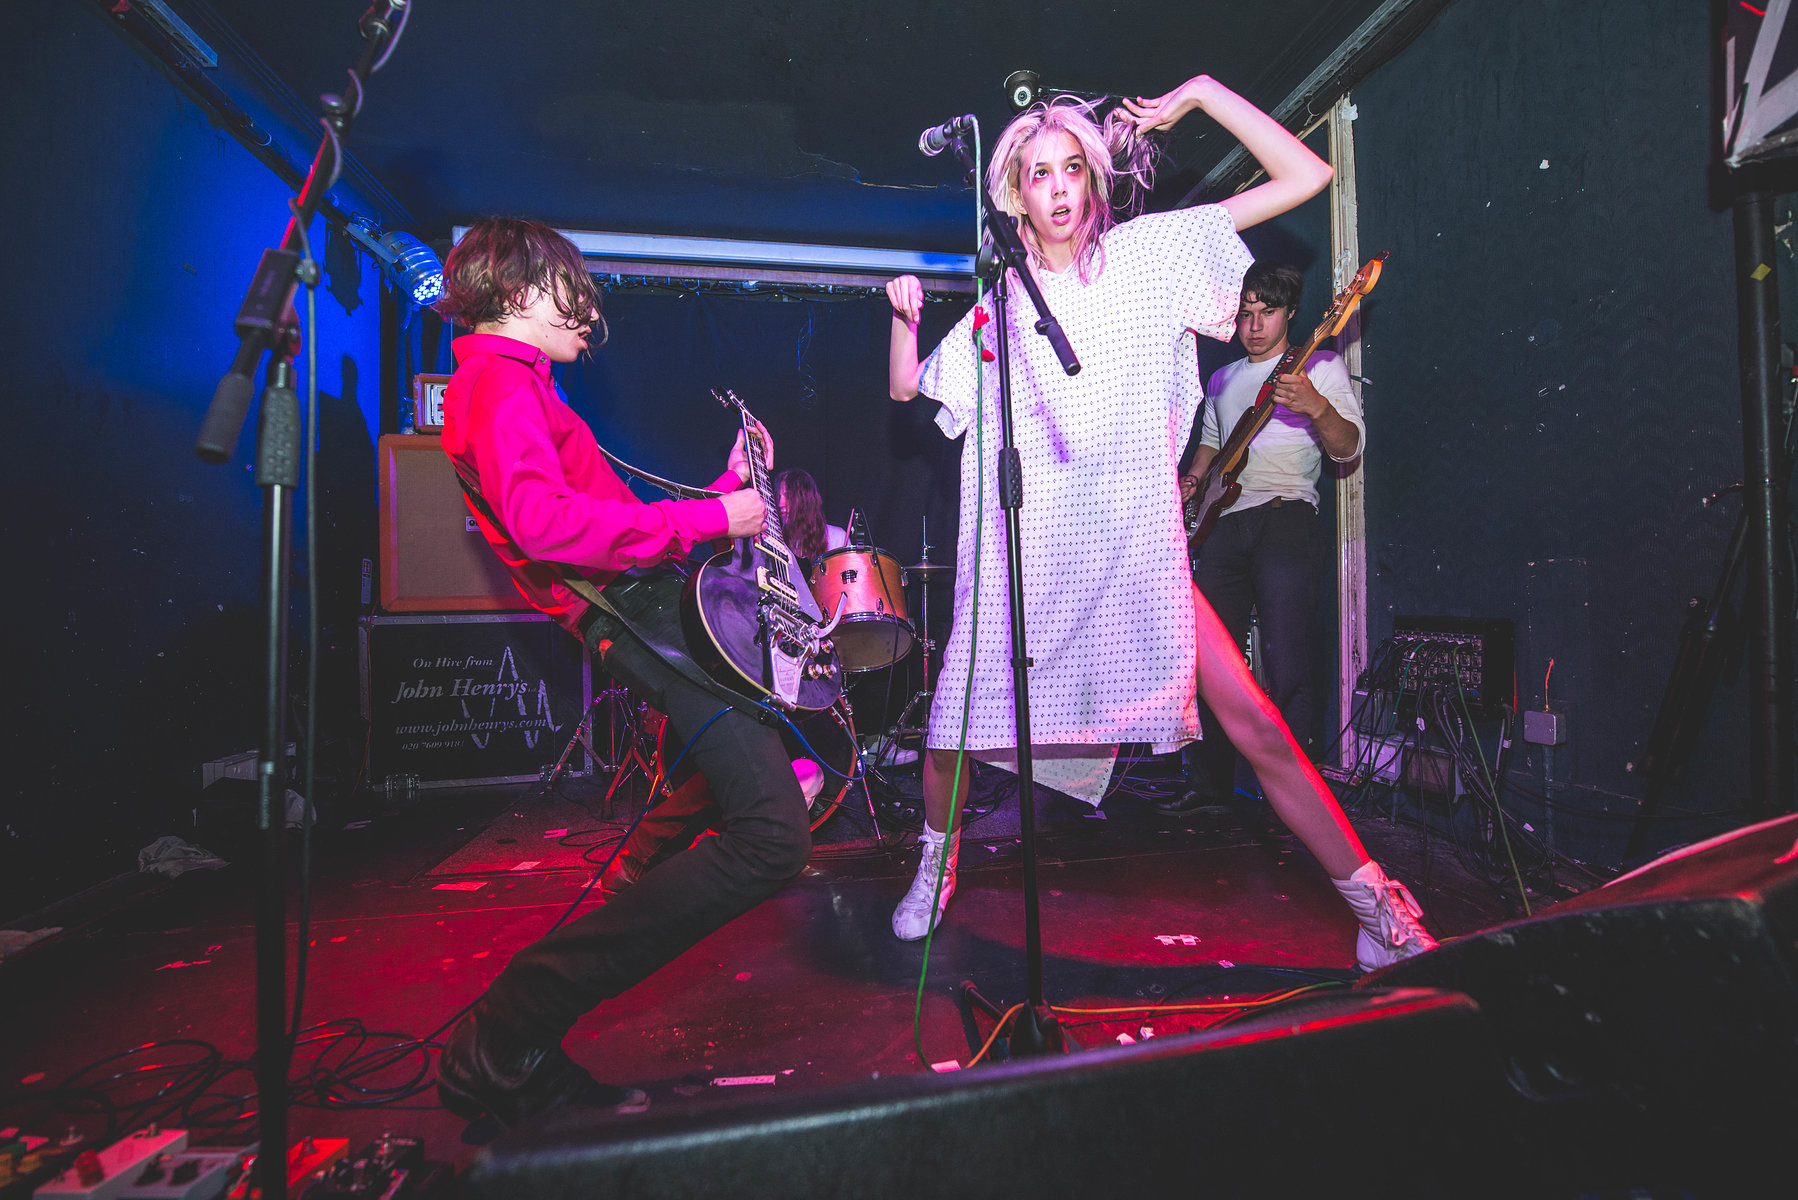 Starcrawler at the Old Blue Last for DIY, May 2017